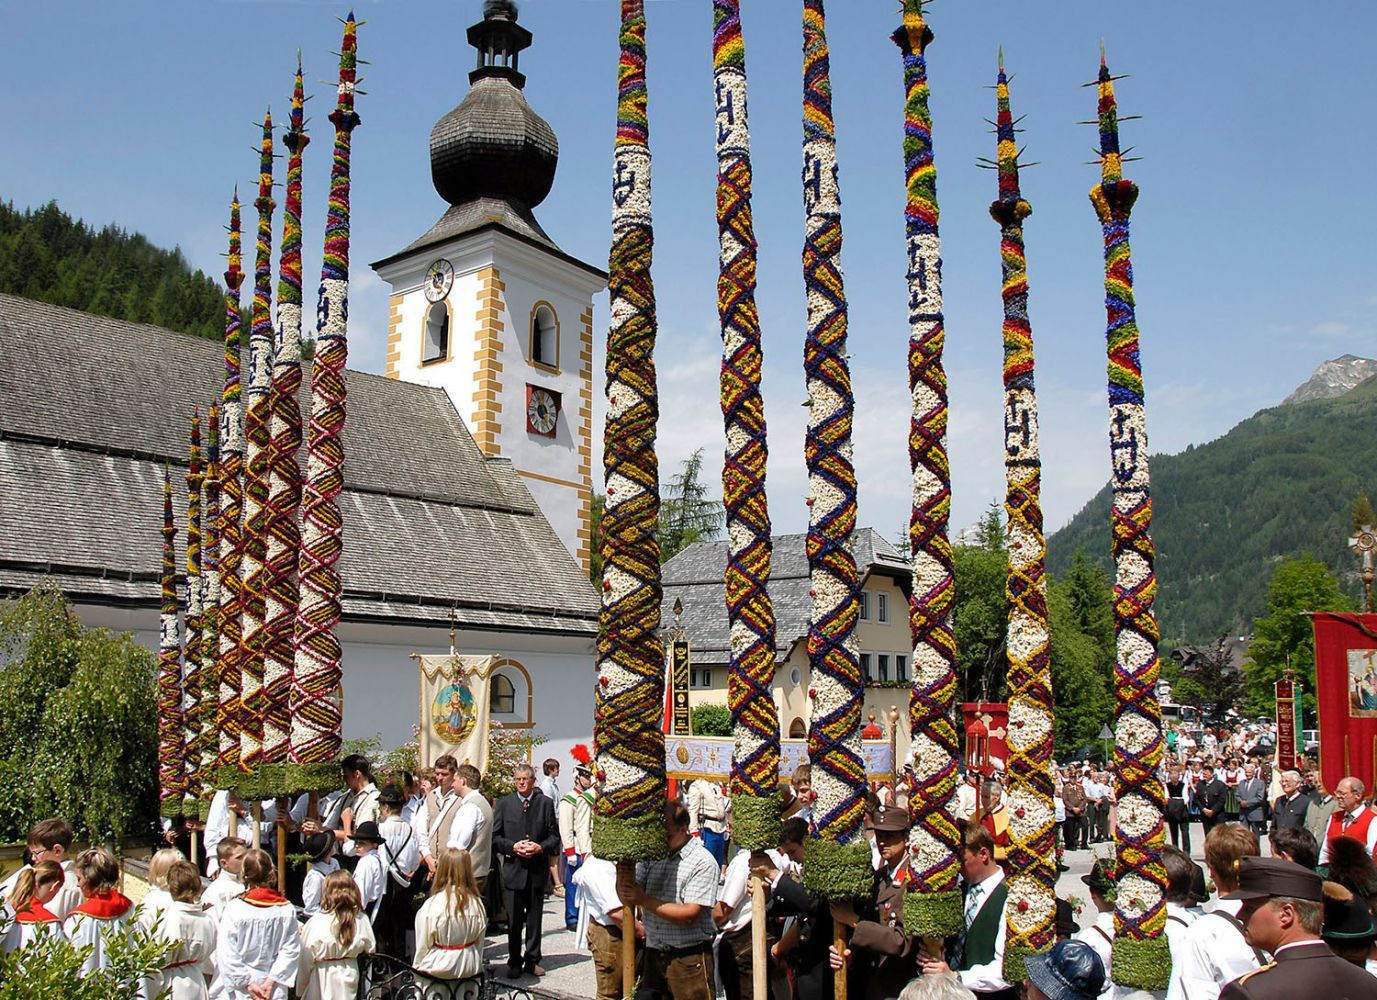 Tradition Lungau - Prangtag in Zederhaus in June with the magnificent pruning sticks, which adorn many thousands of flowers